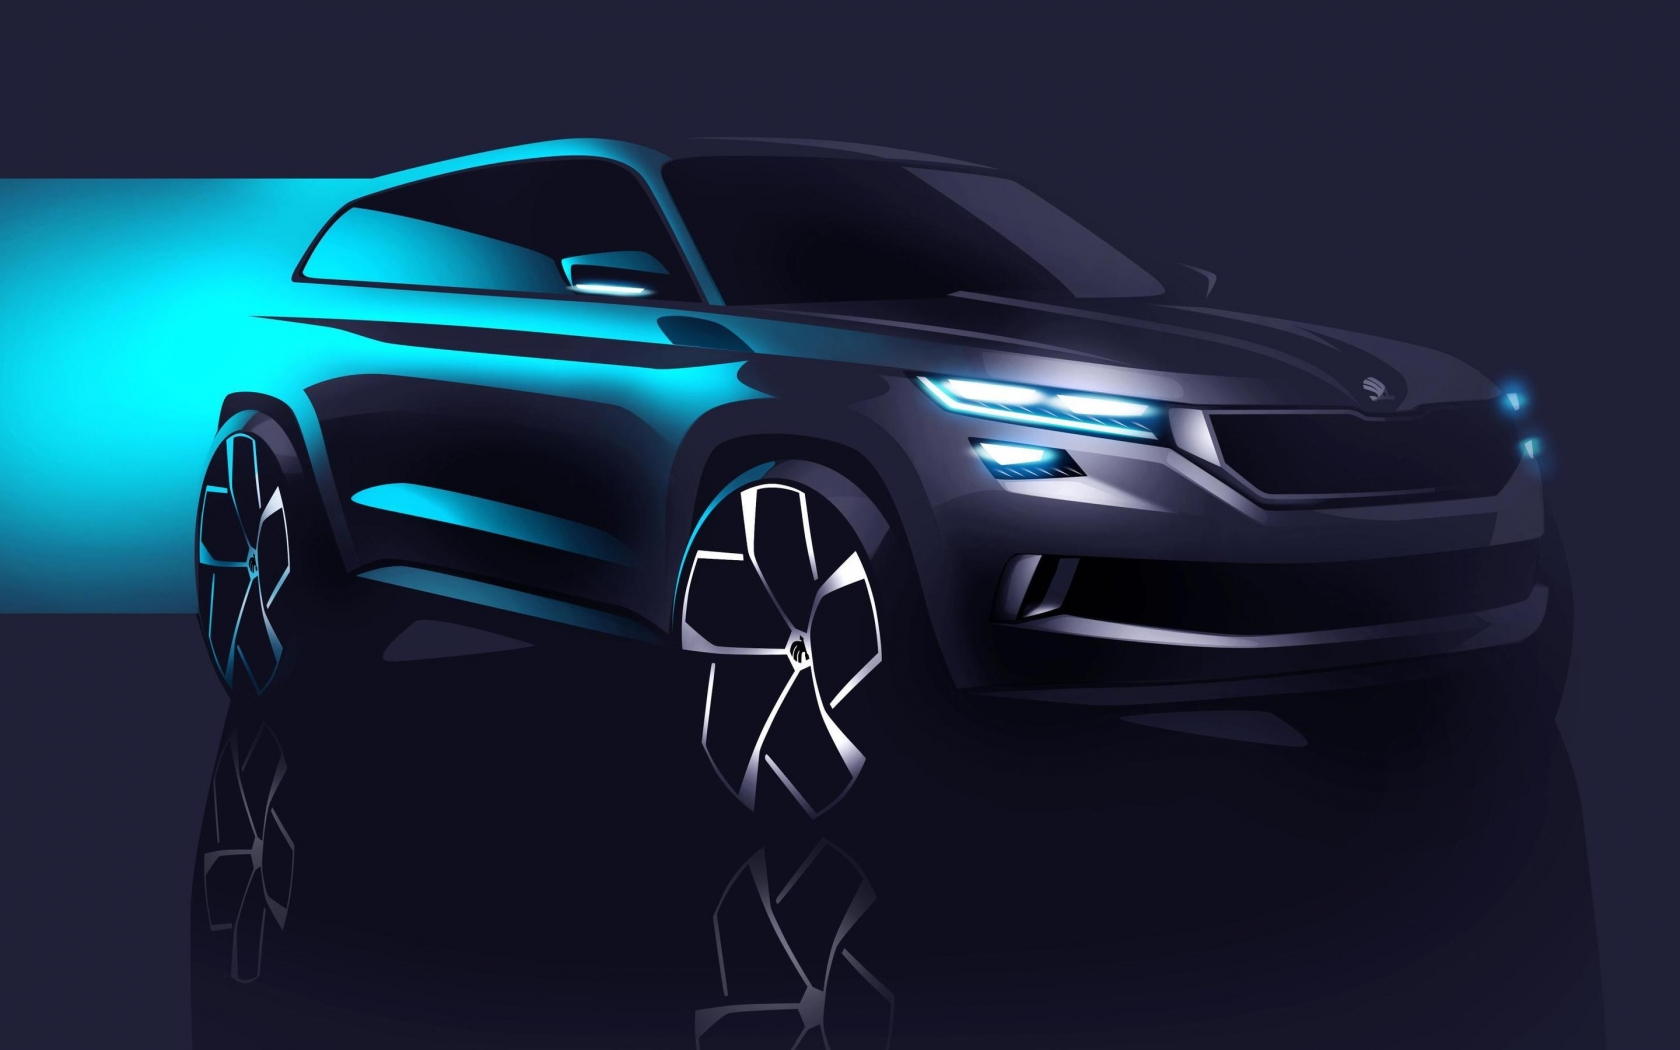 2016 Skoda Visions Concept for 1680 x 1050 widescreen resolution